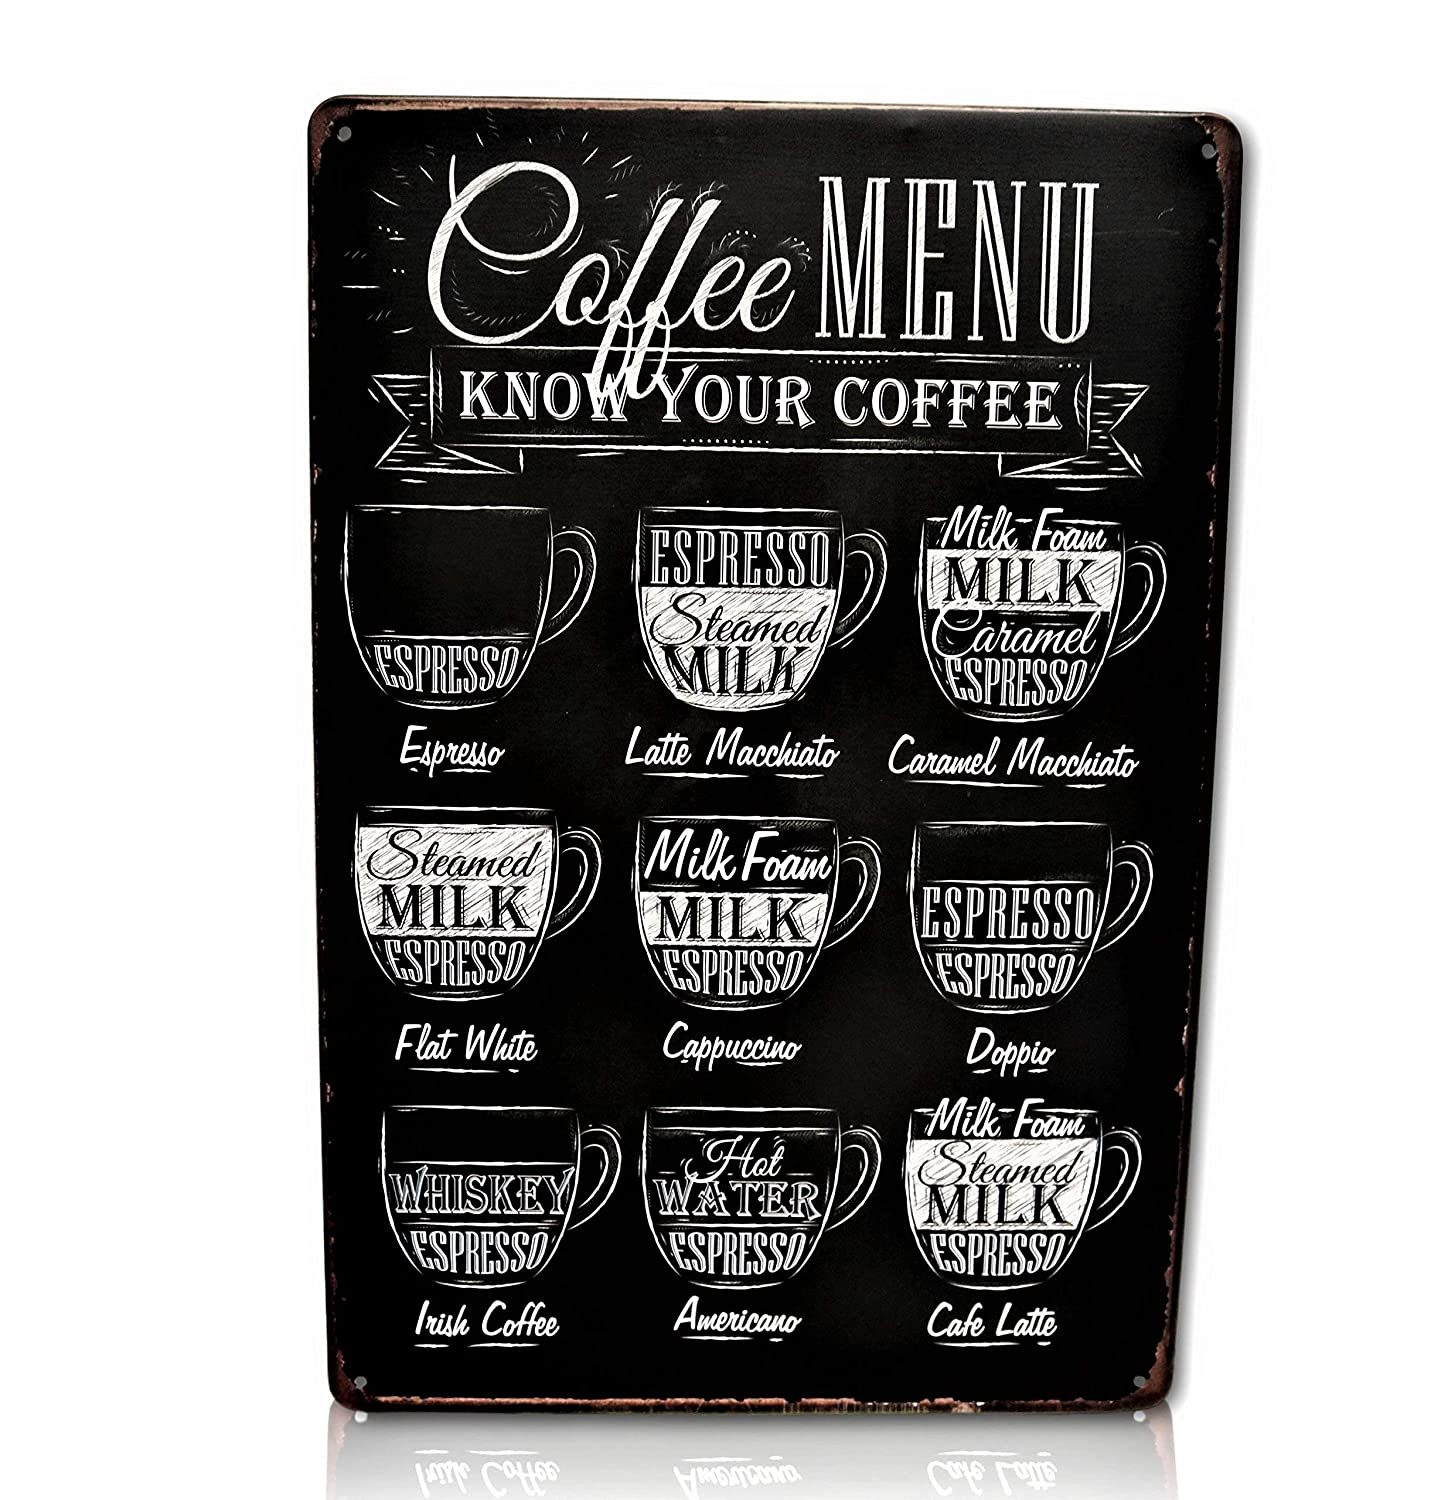 Save Directly Coffee Menu Bar Metal Sign - Perfect for Your Home Decor, Kitchen, Coffee Bar, Cafe, Office, Workshop Know Your Coffee Vintage Retro Wall Signs Size: 8x12 Inches